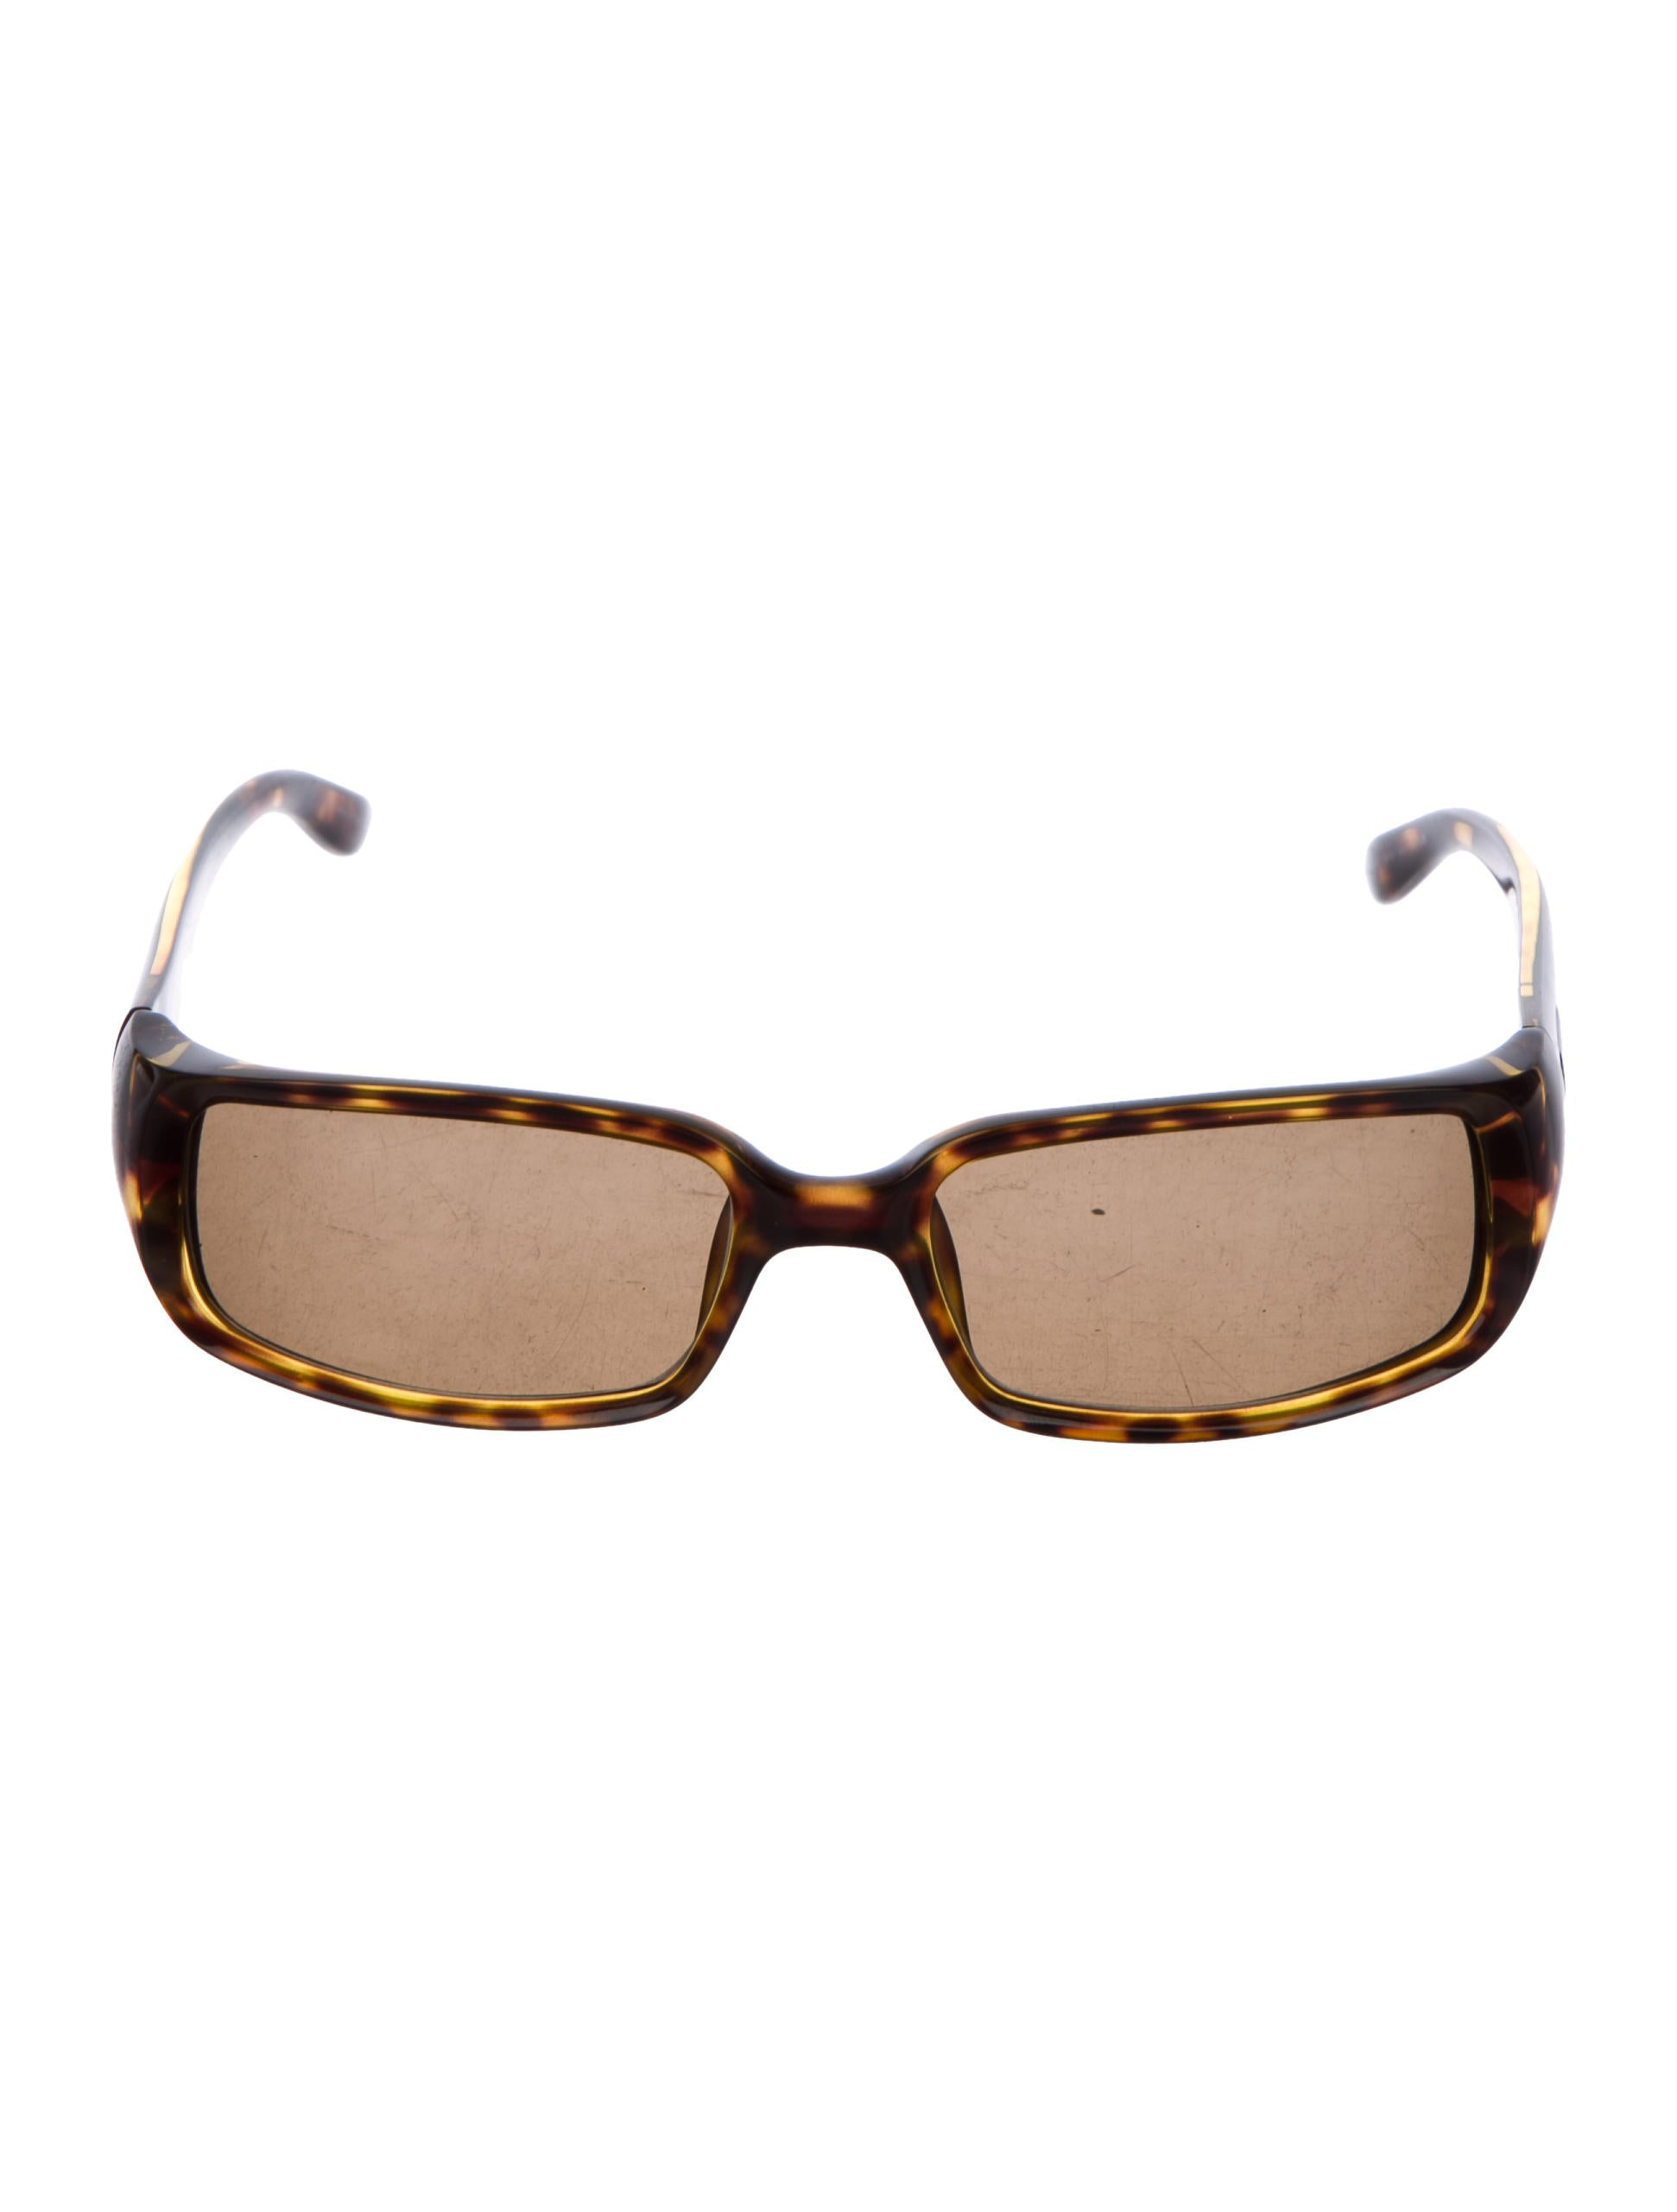 Gucci Tinted Rectangular Frames - Accessories - GUC204654 | The RealReal